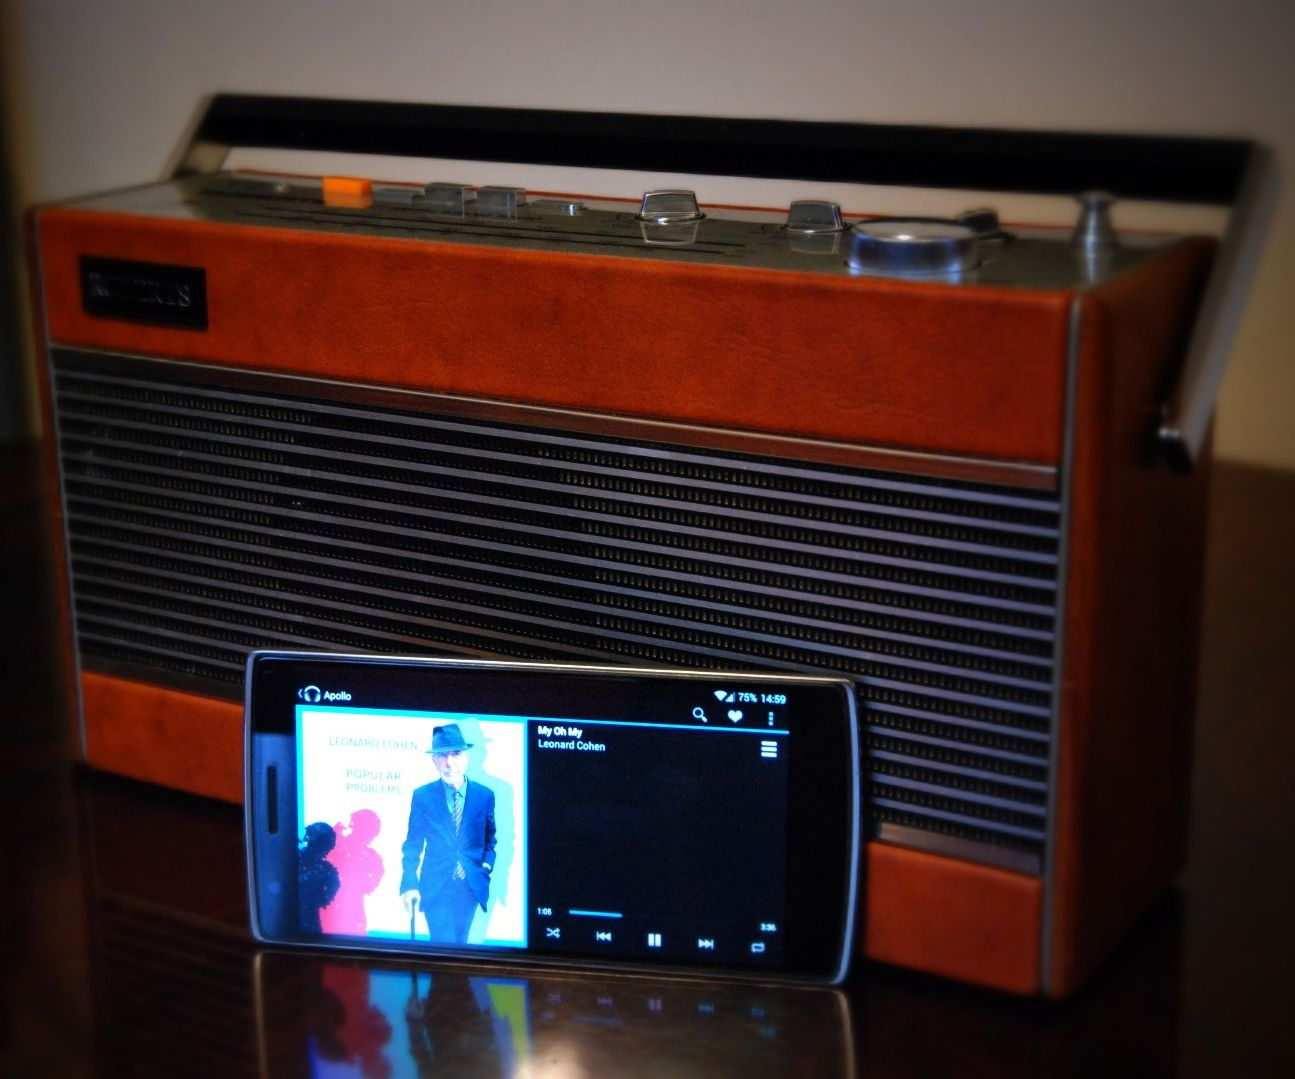 Roberts 747 - DIY Raspberry Pi internet radio/streamer